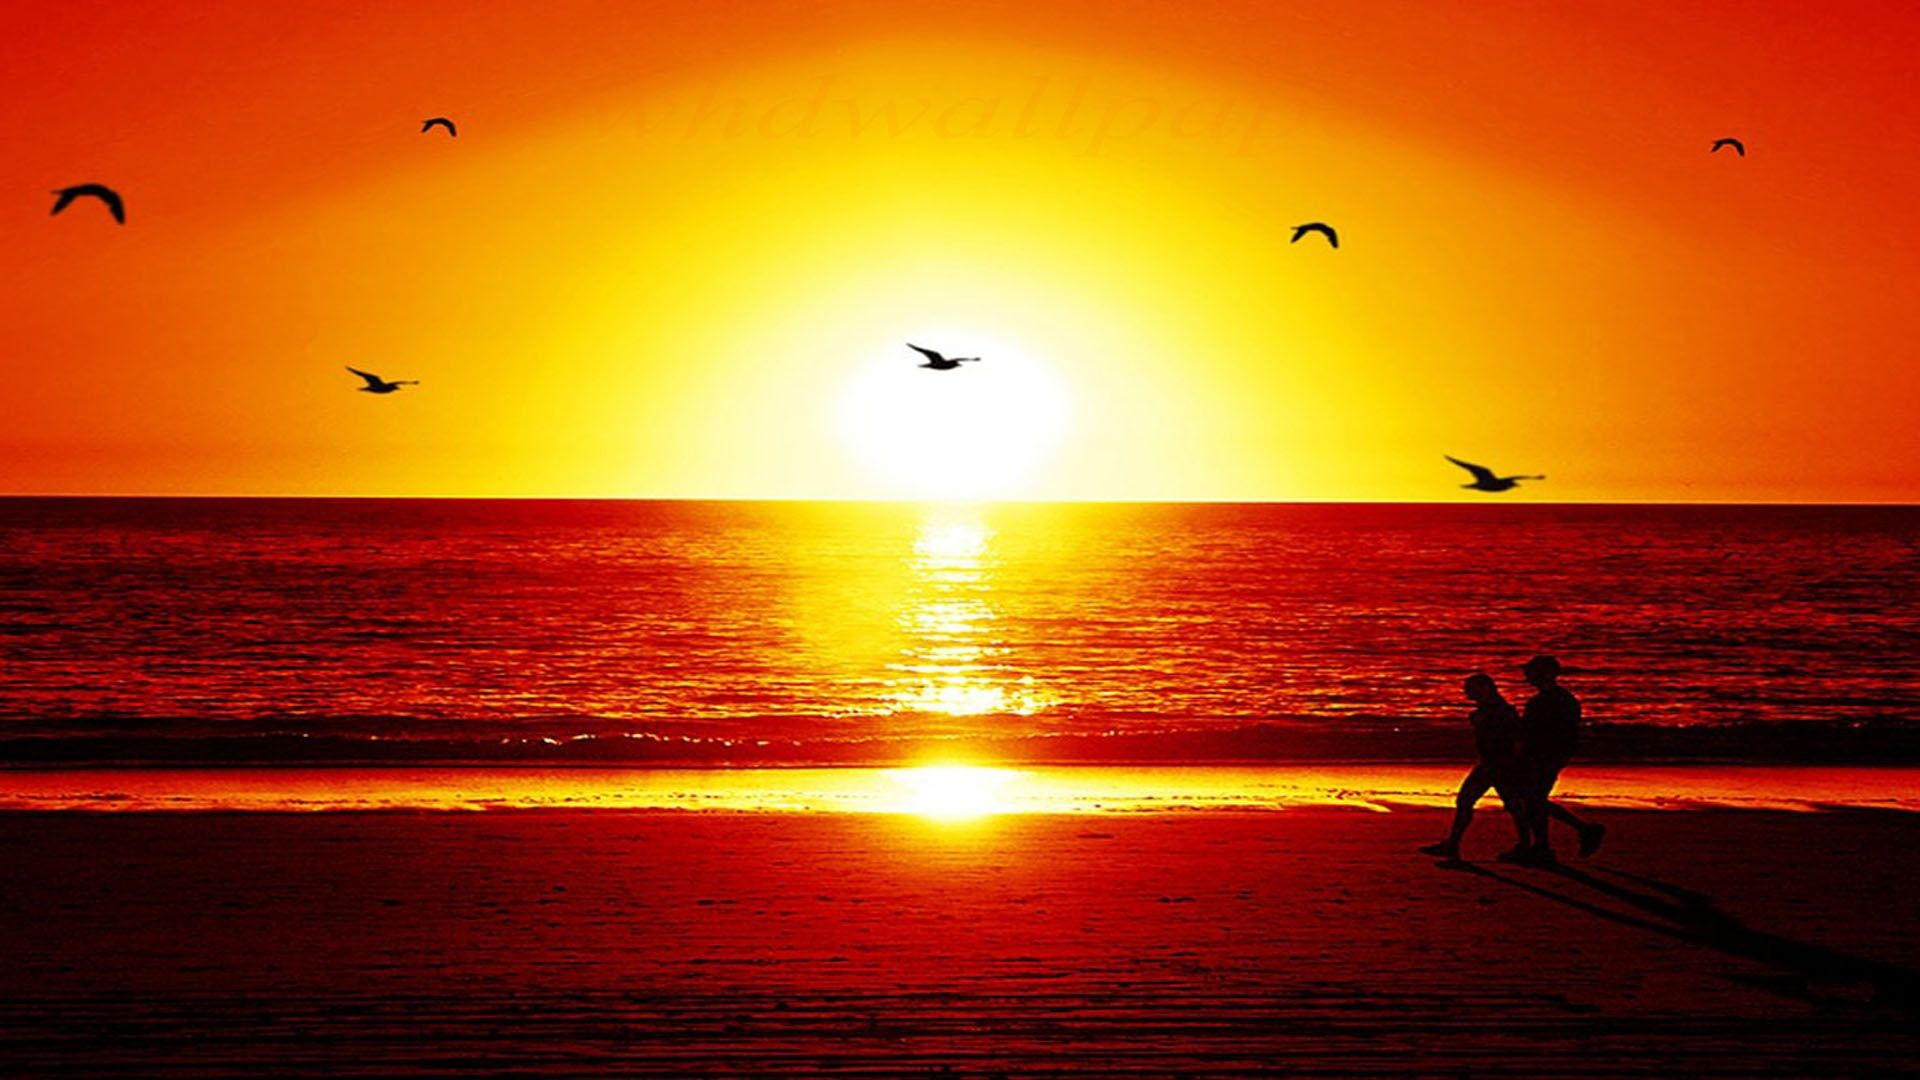 Sunset Wallpaper HD Widescreen